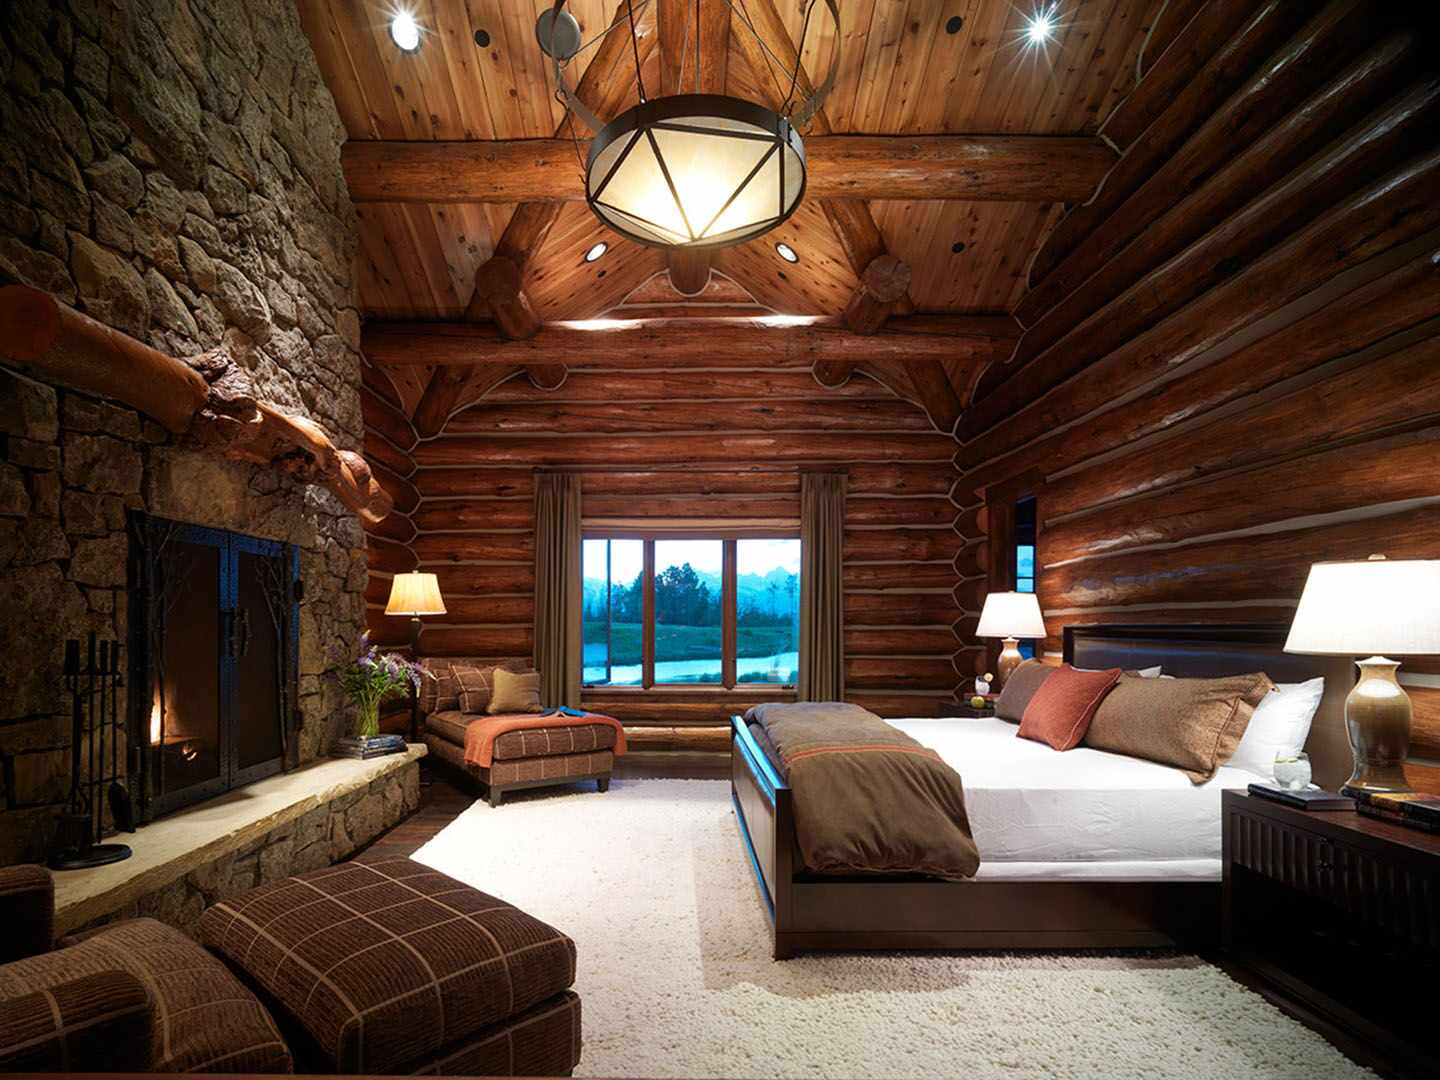 Bedroom Ideas: 15 Wicked Rustic Bedroom Designs That Will Make You Want Them